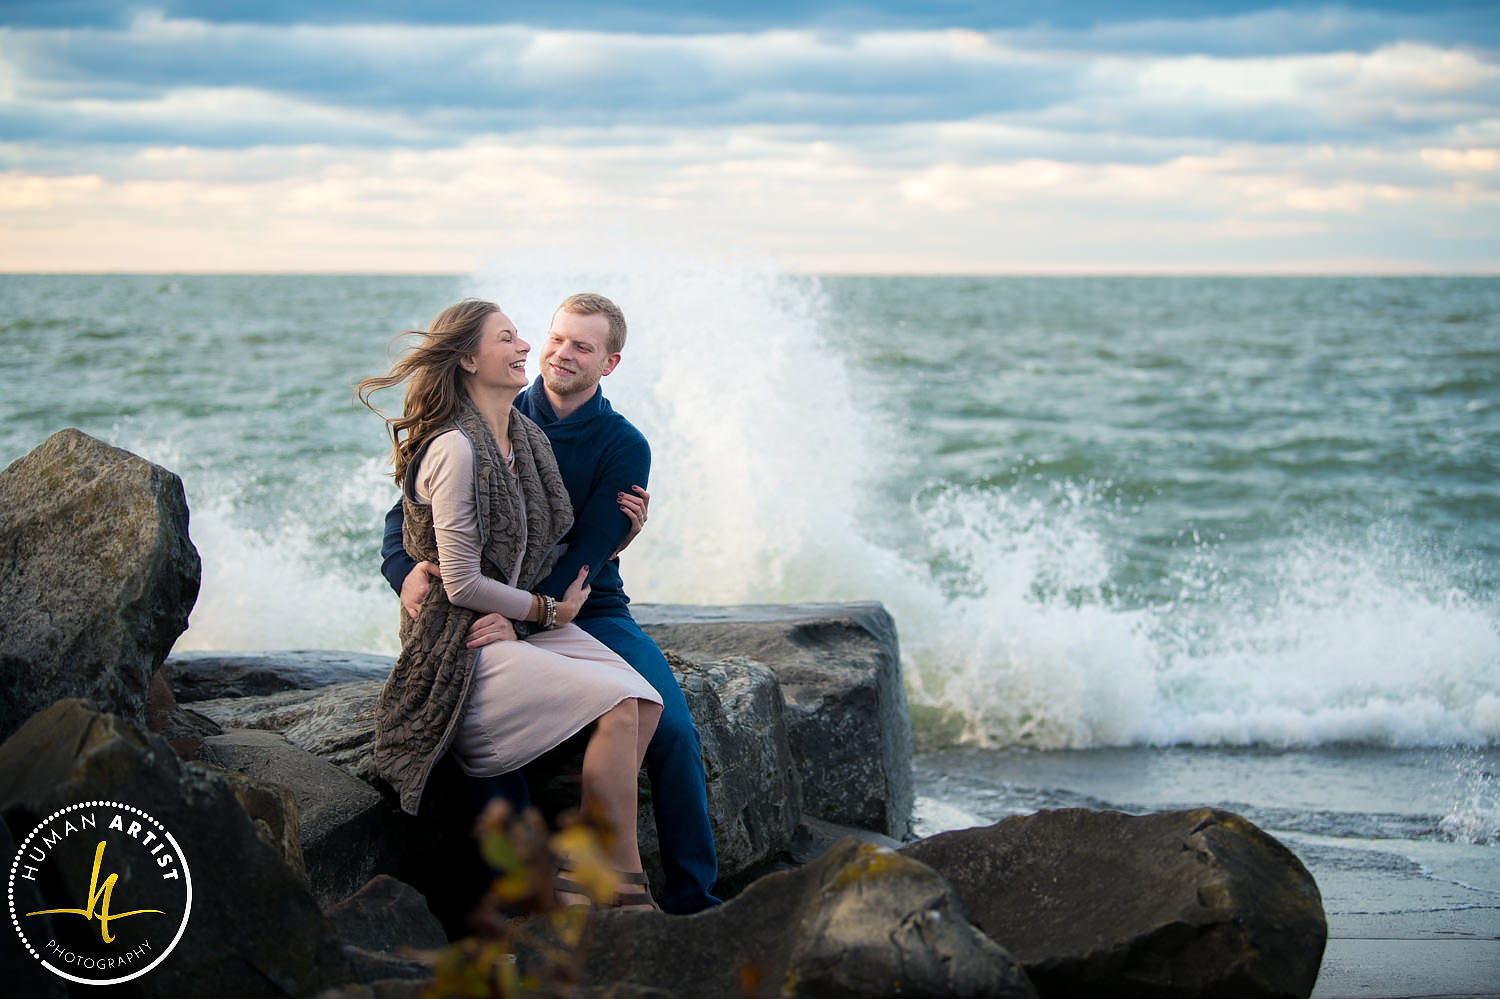 Edgewater Park Engagement Session with Carlie and Cameron